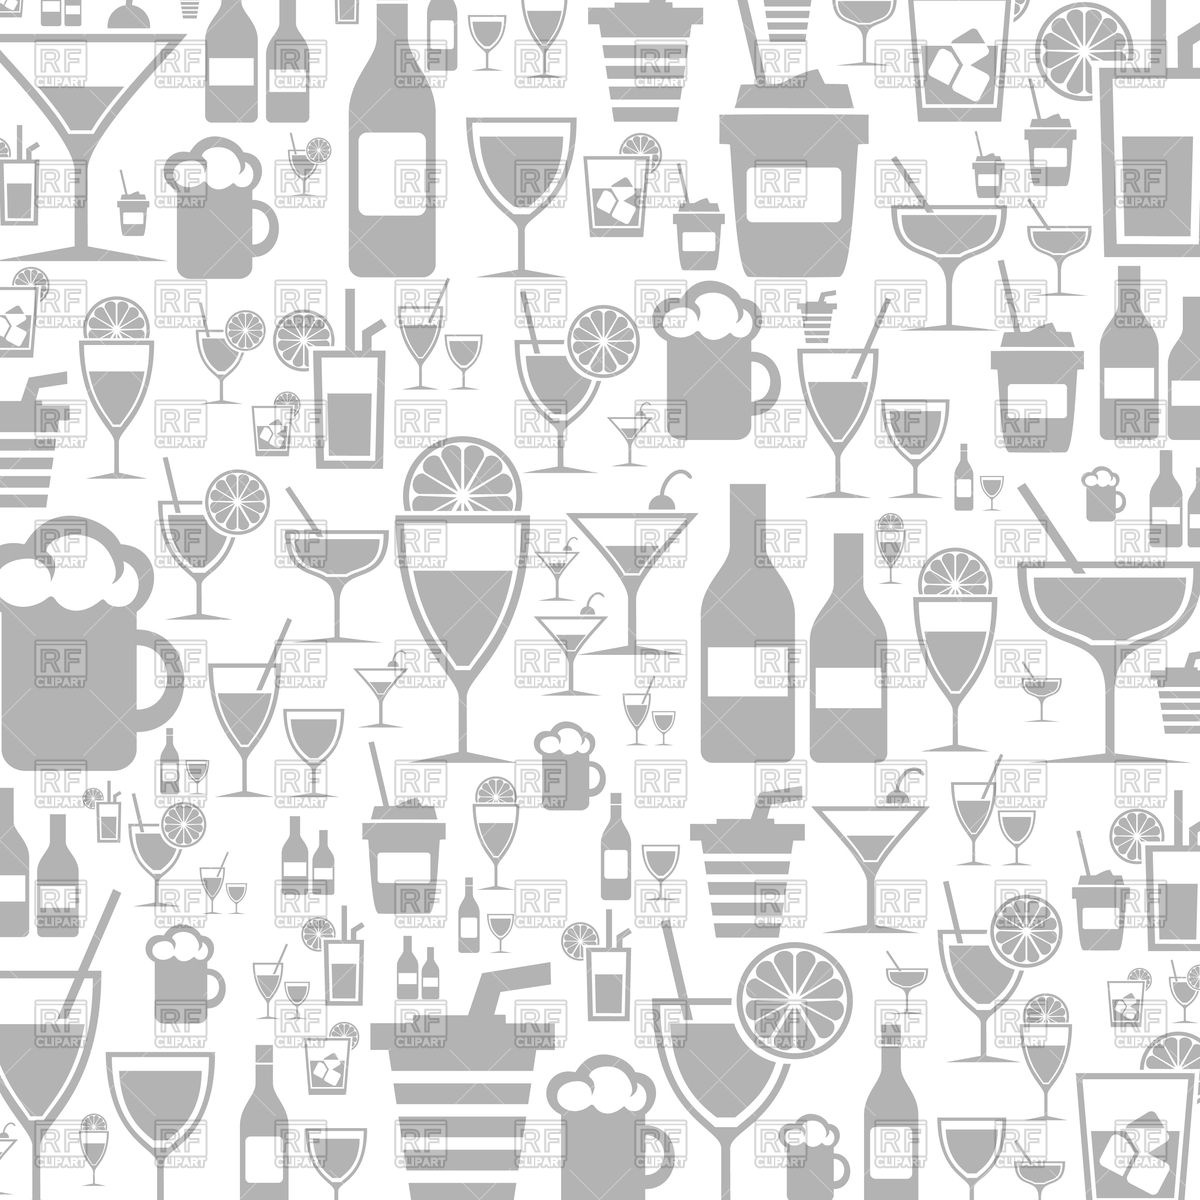 Background made of alcohol icons Vector Image of Backgrounds 1200x1200